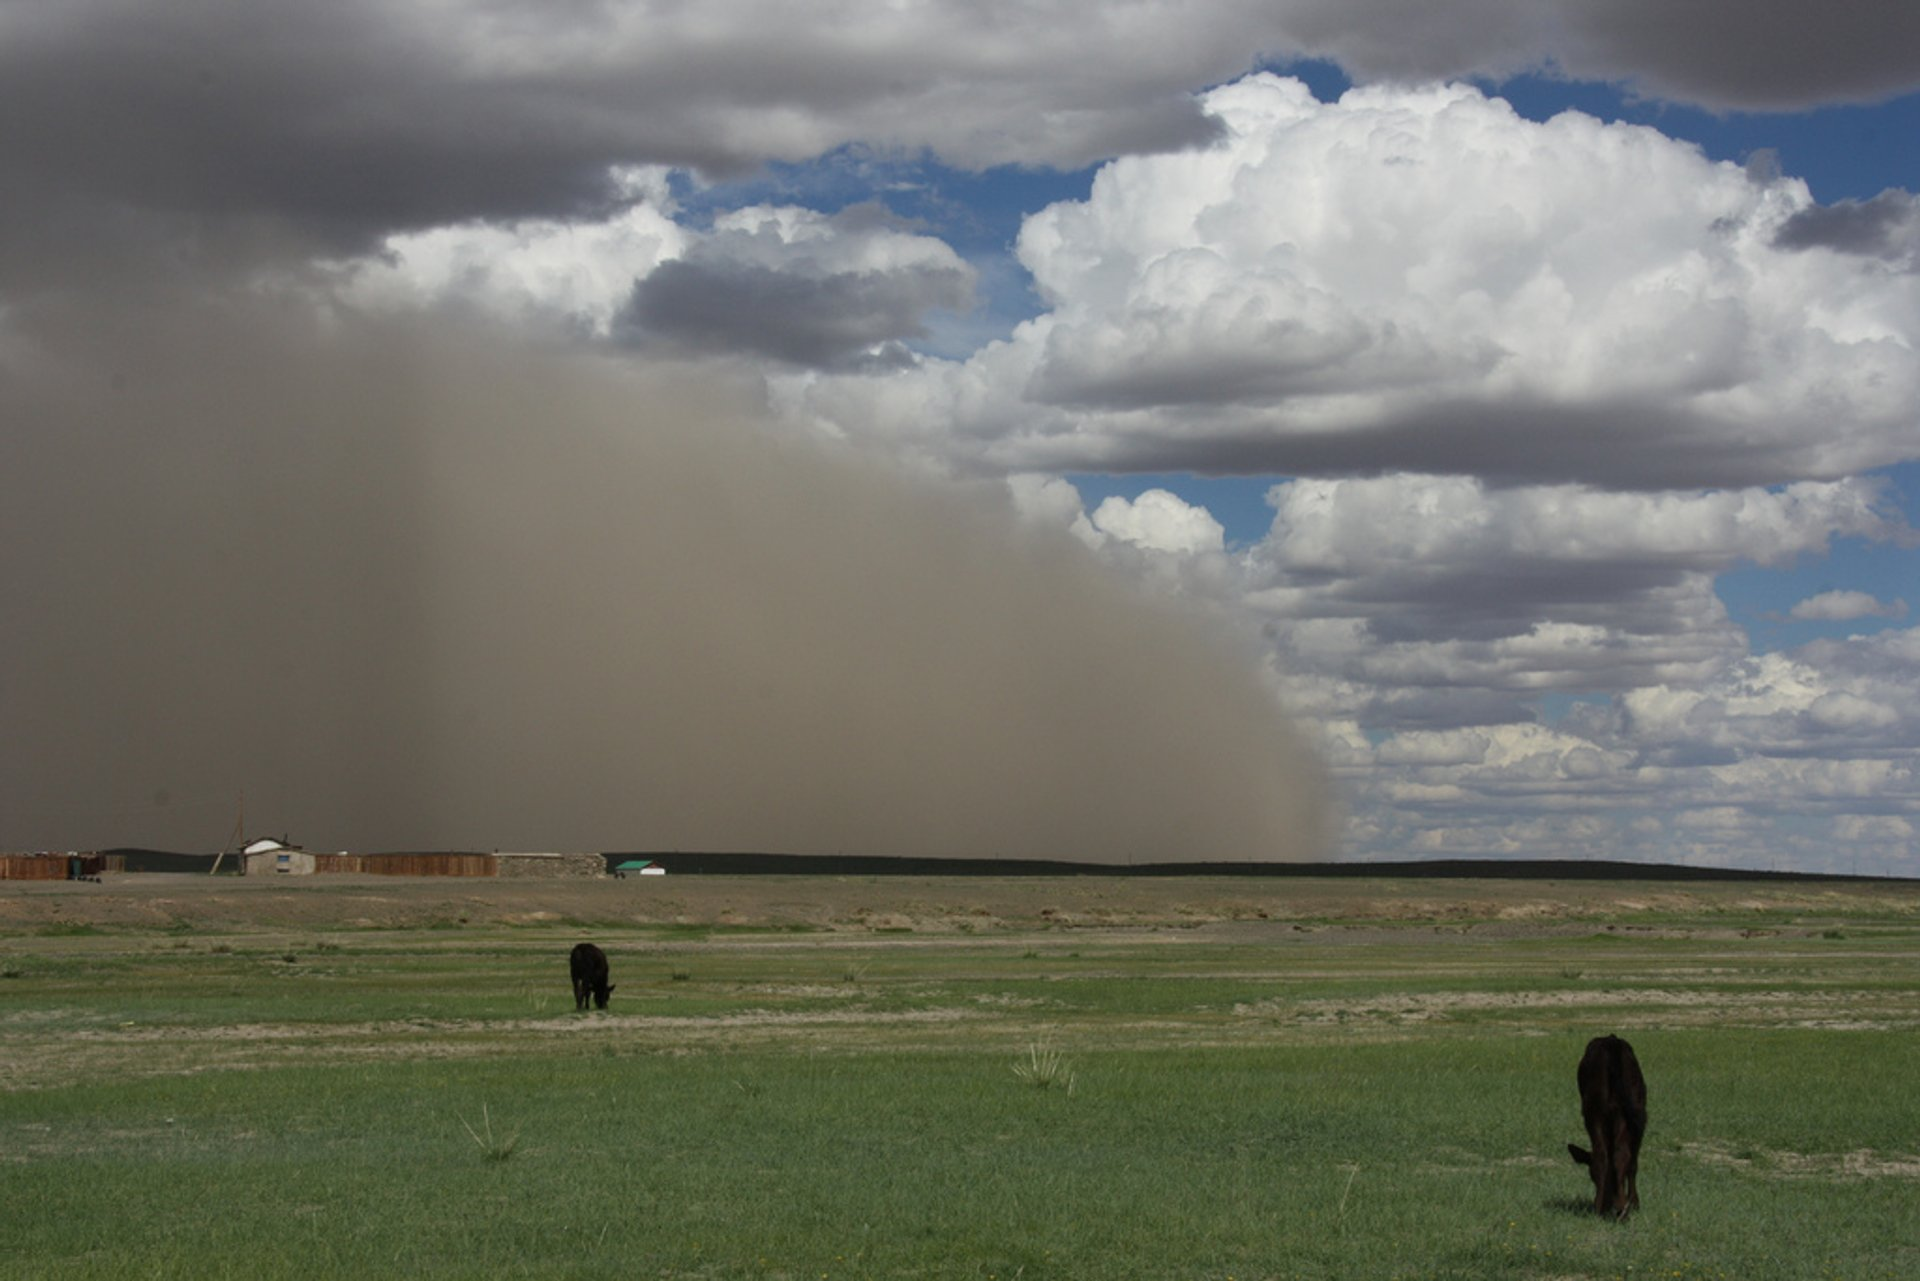 Sand and Dust Storms in Mongolia 2020 - Best Time